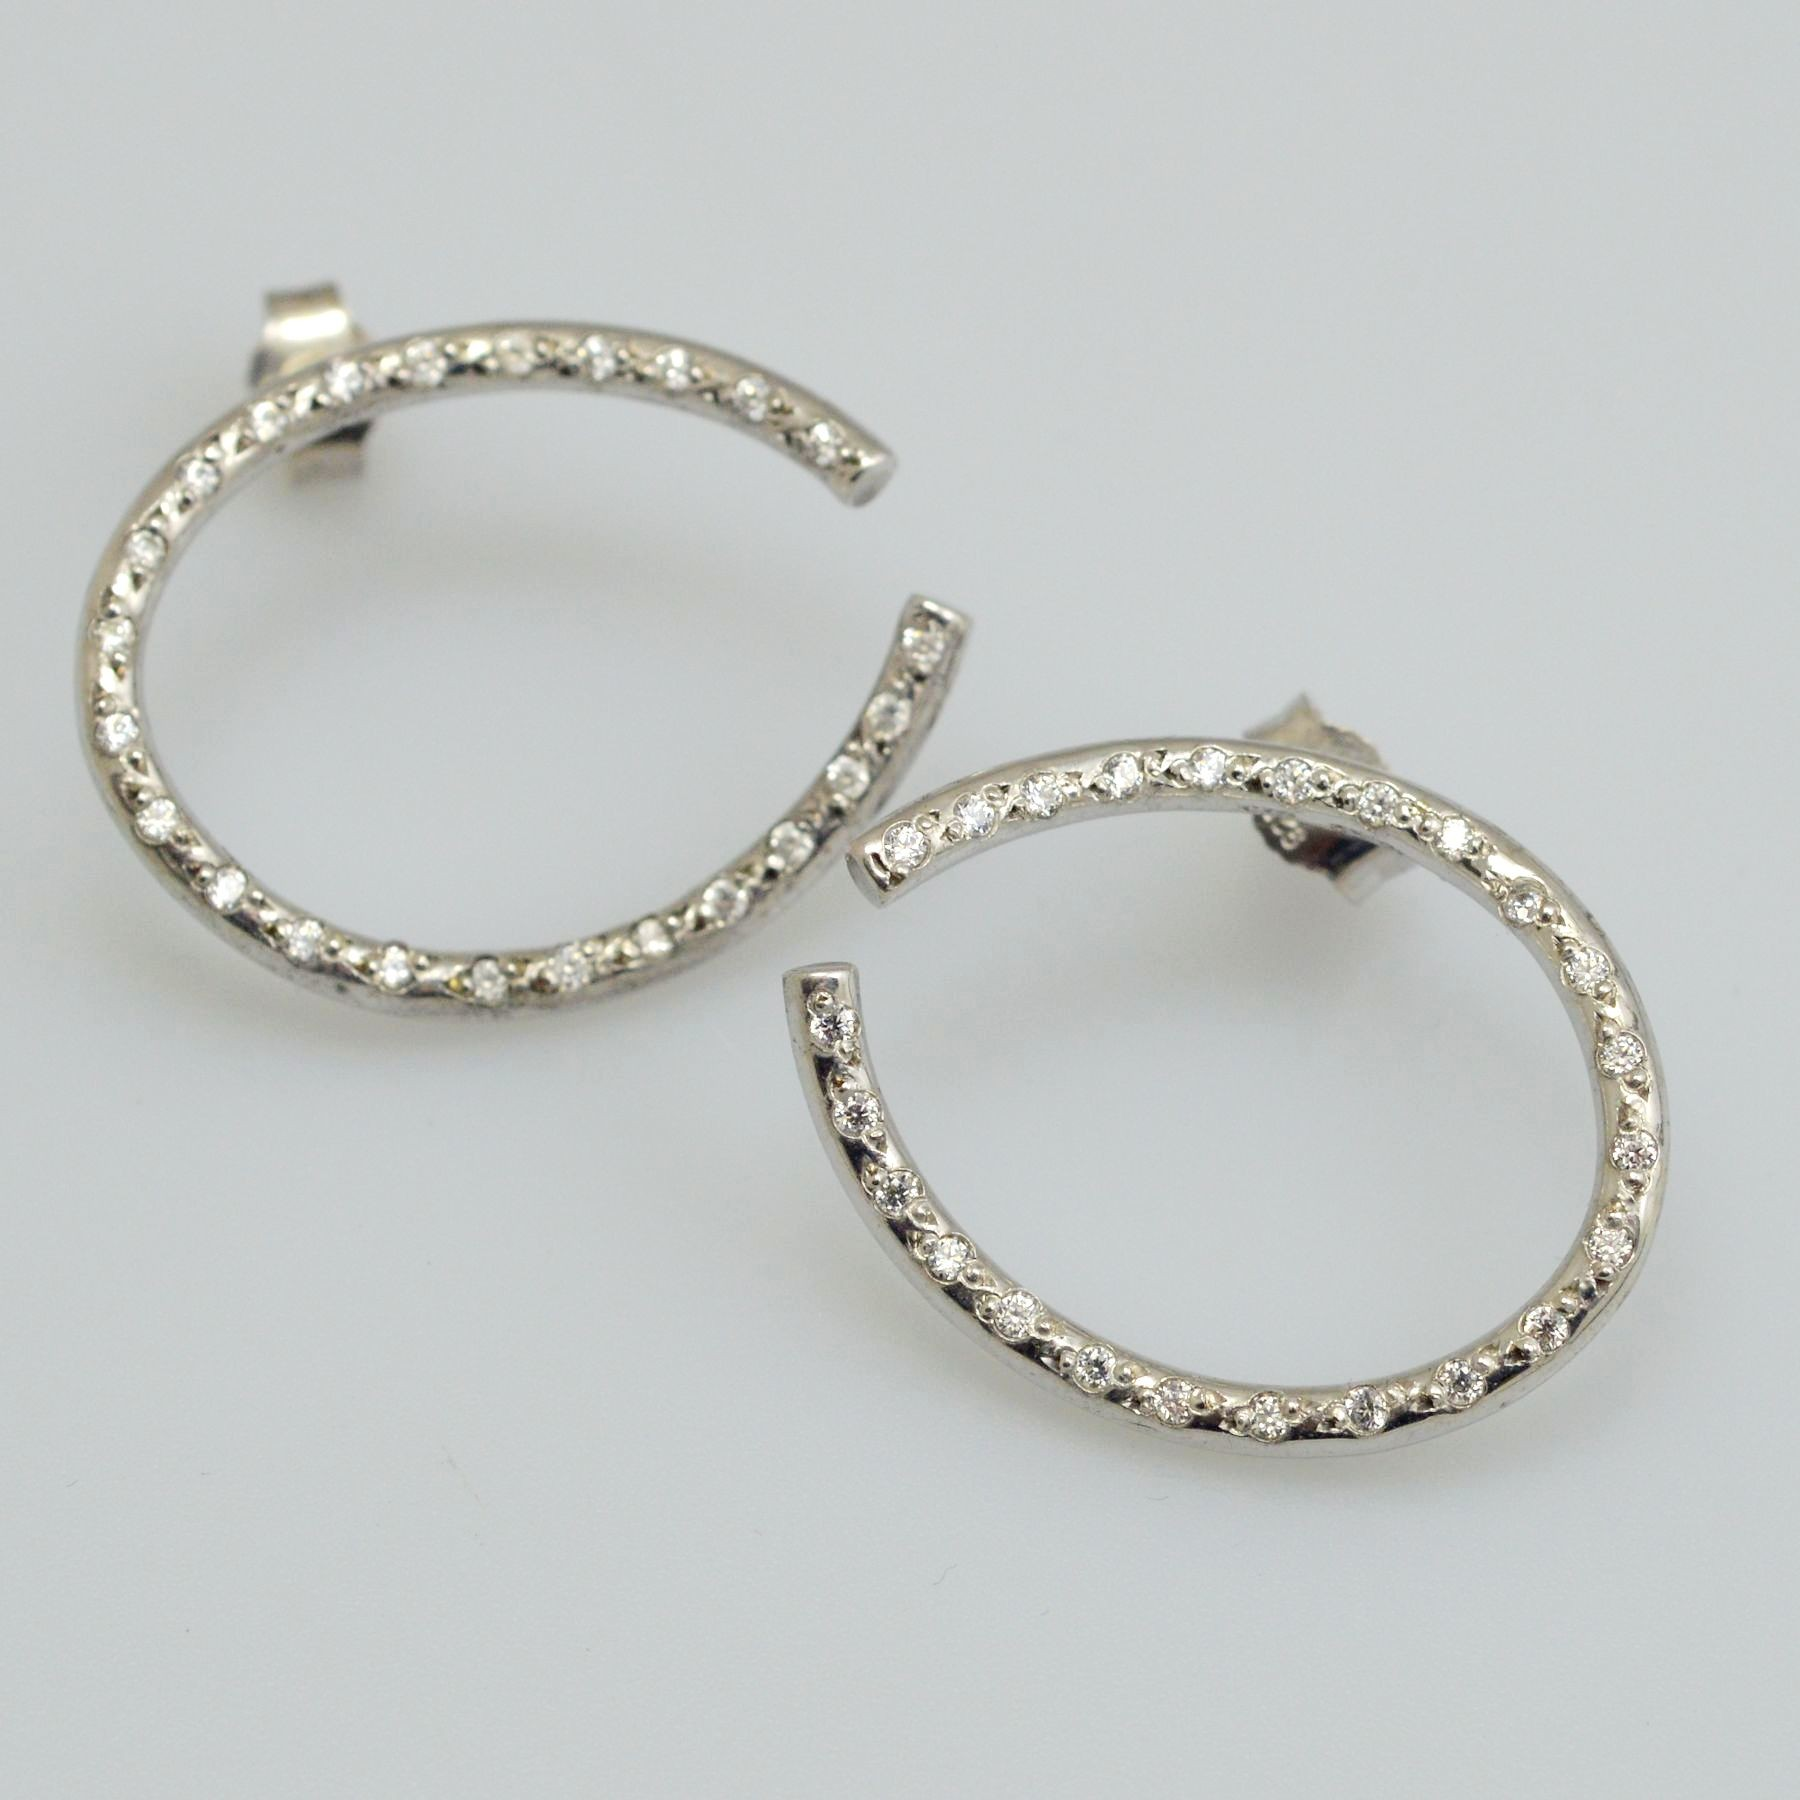 Silver earrings 925 rhodium plated with synthetic stones